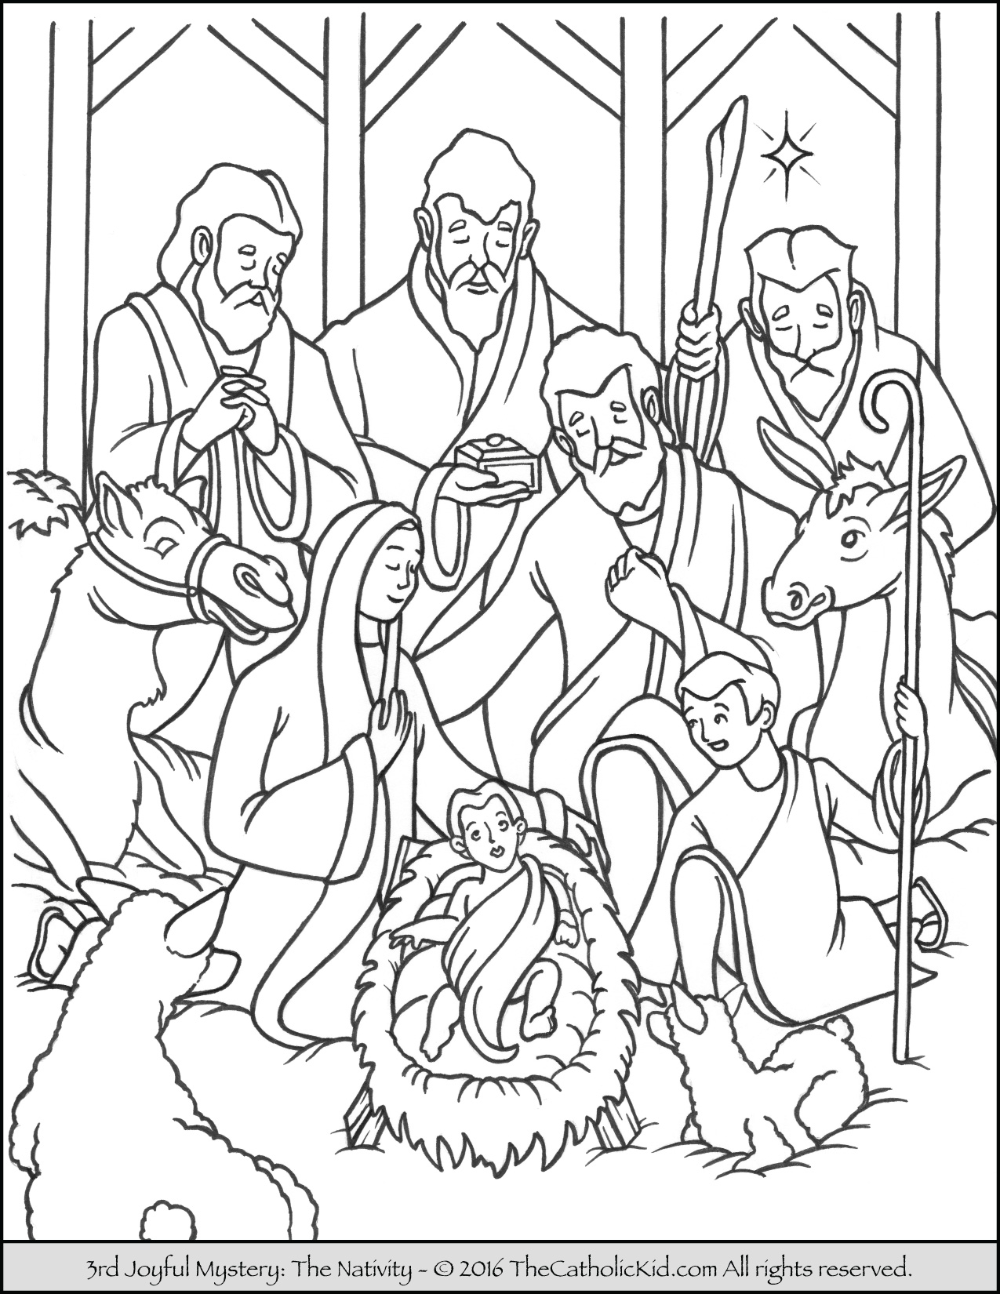 Joyful Mysteries Rosary Coloring Pages The Catholic Kid Nativity Coloring Christmas Coloring Pages Jesus Coloring Pages